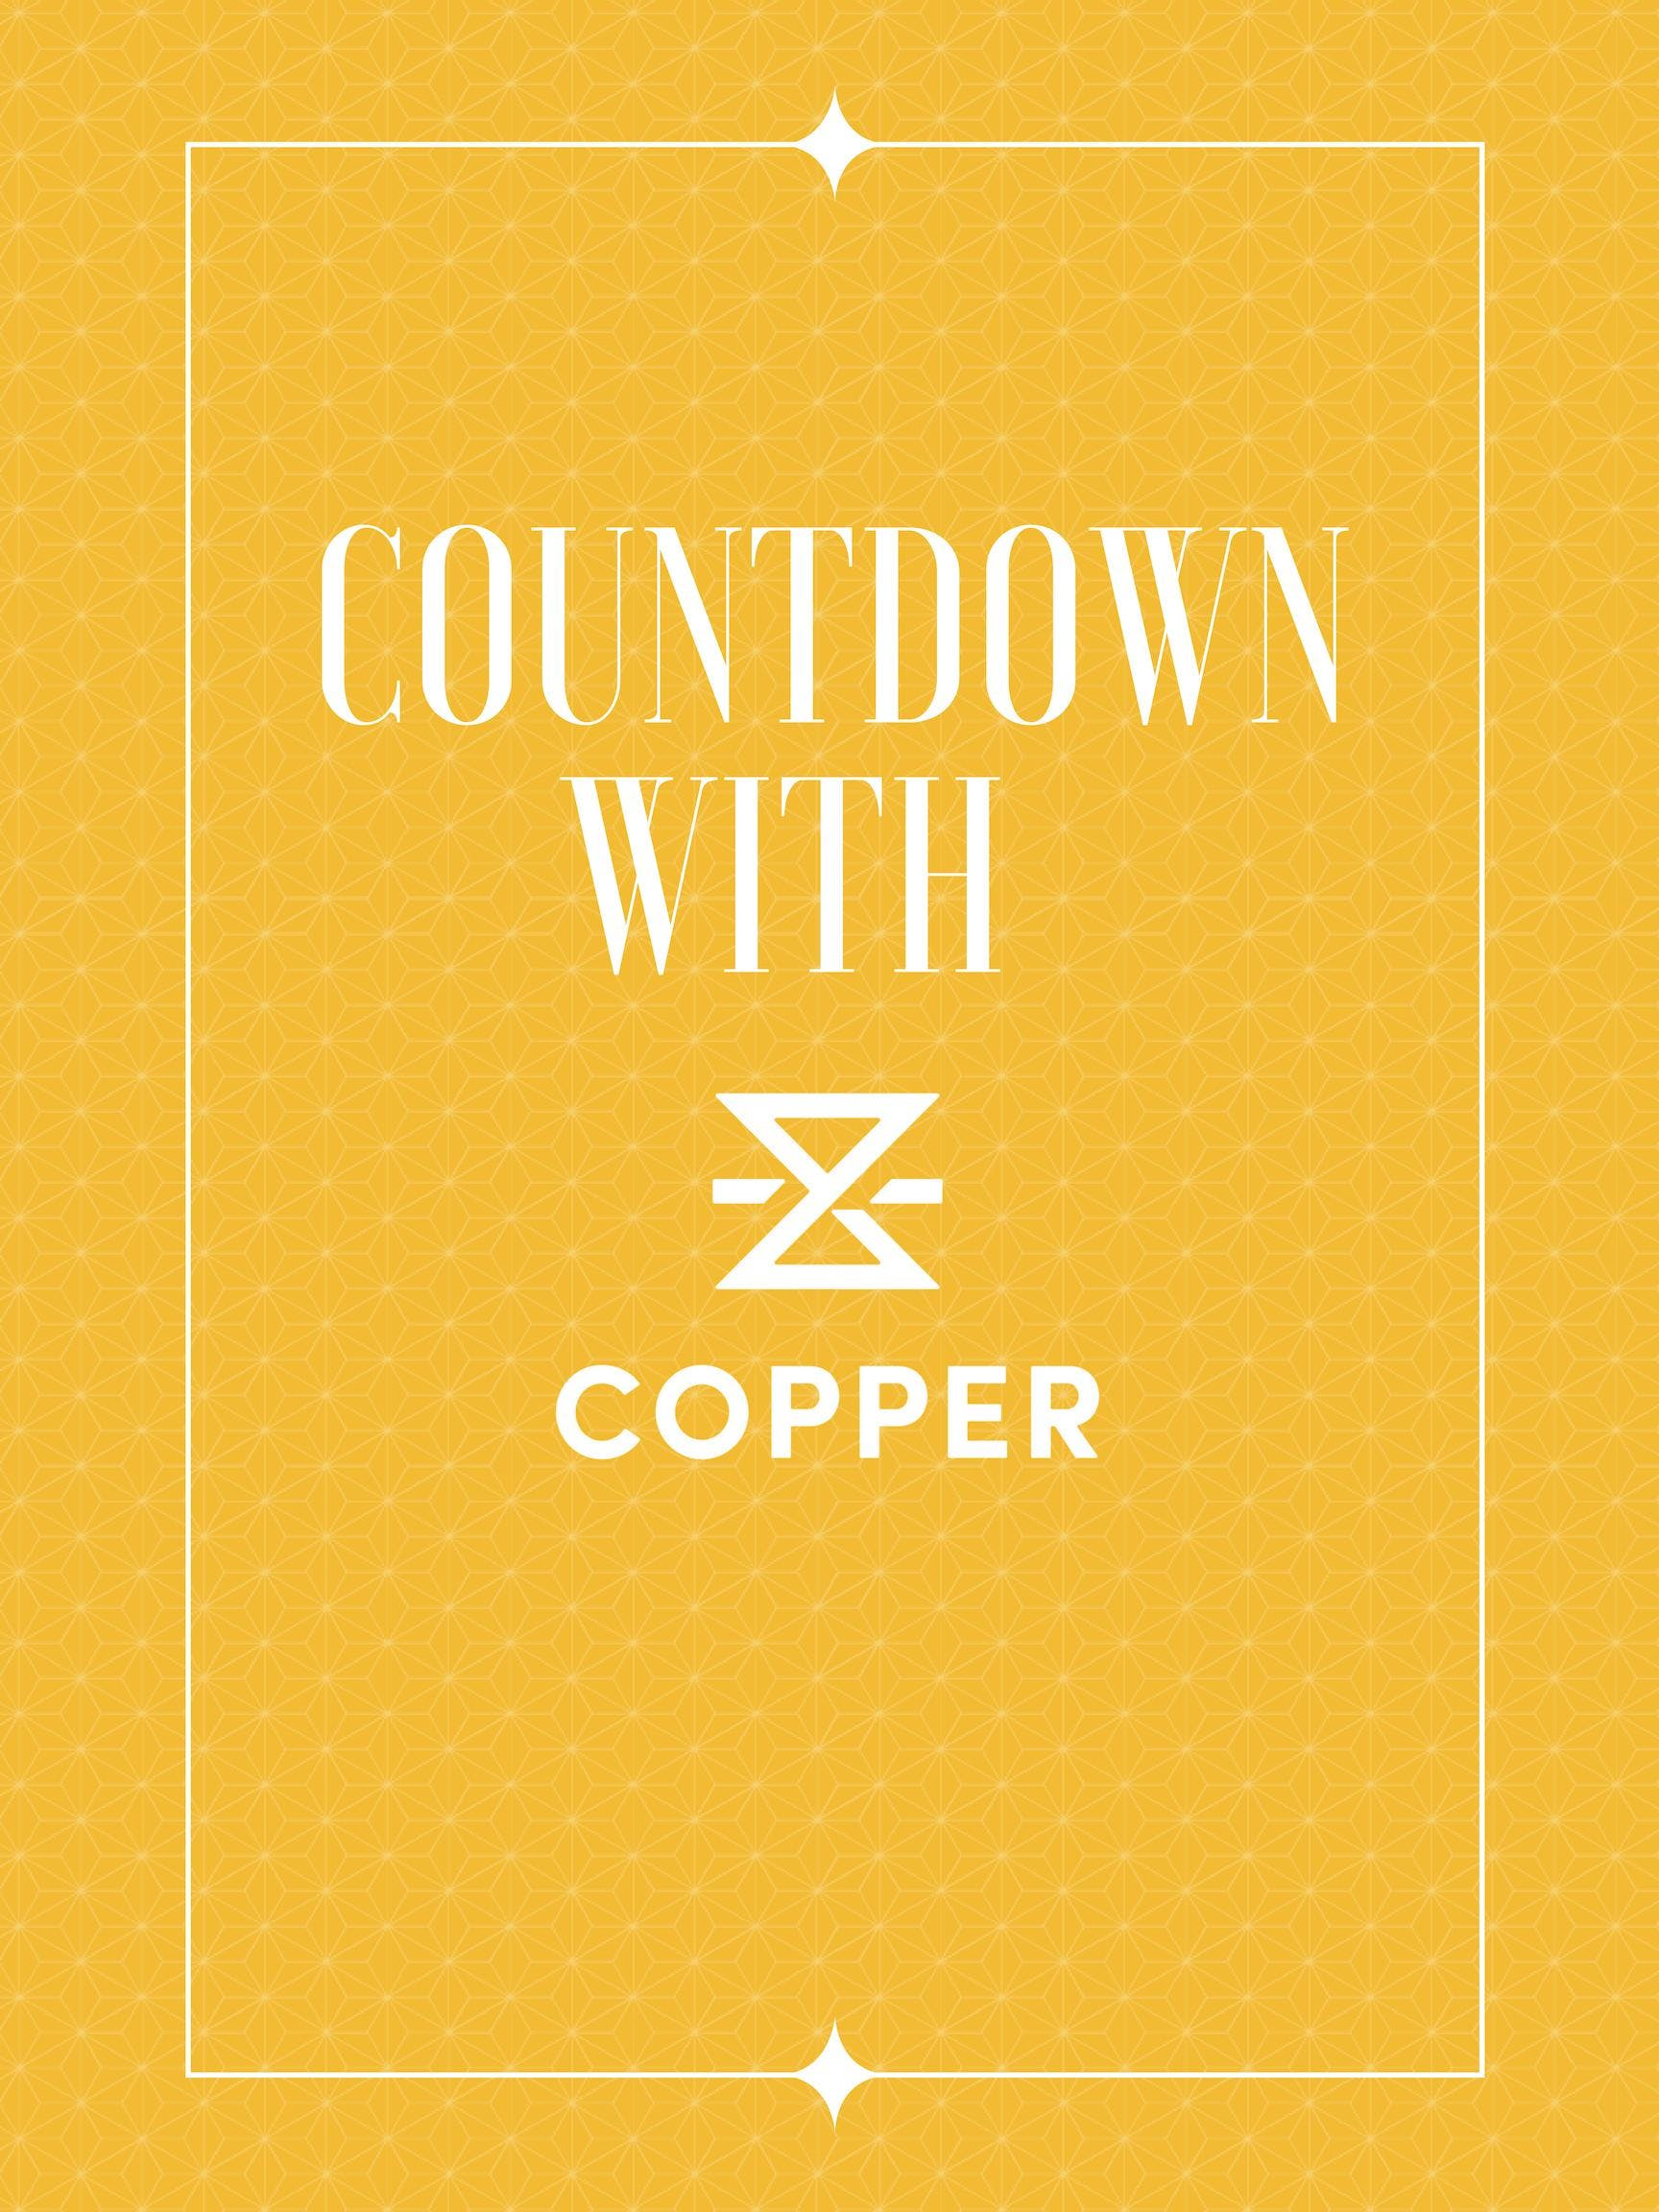 Countdown with Copper